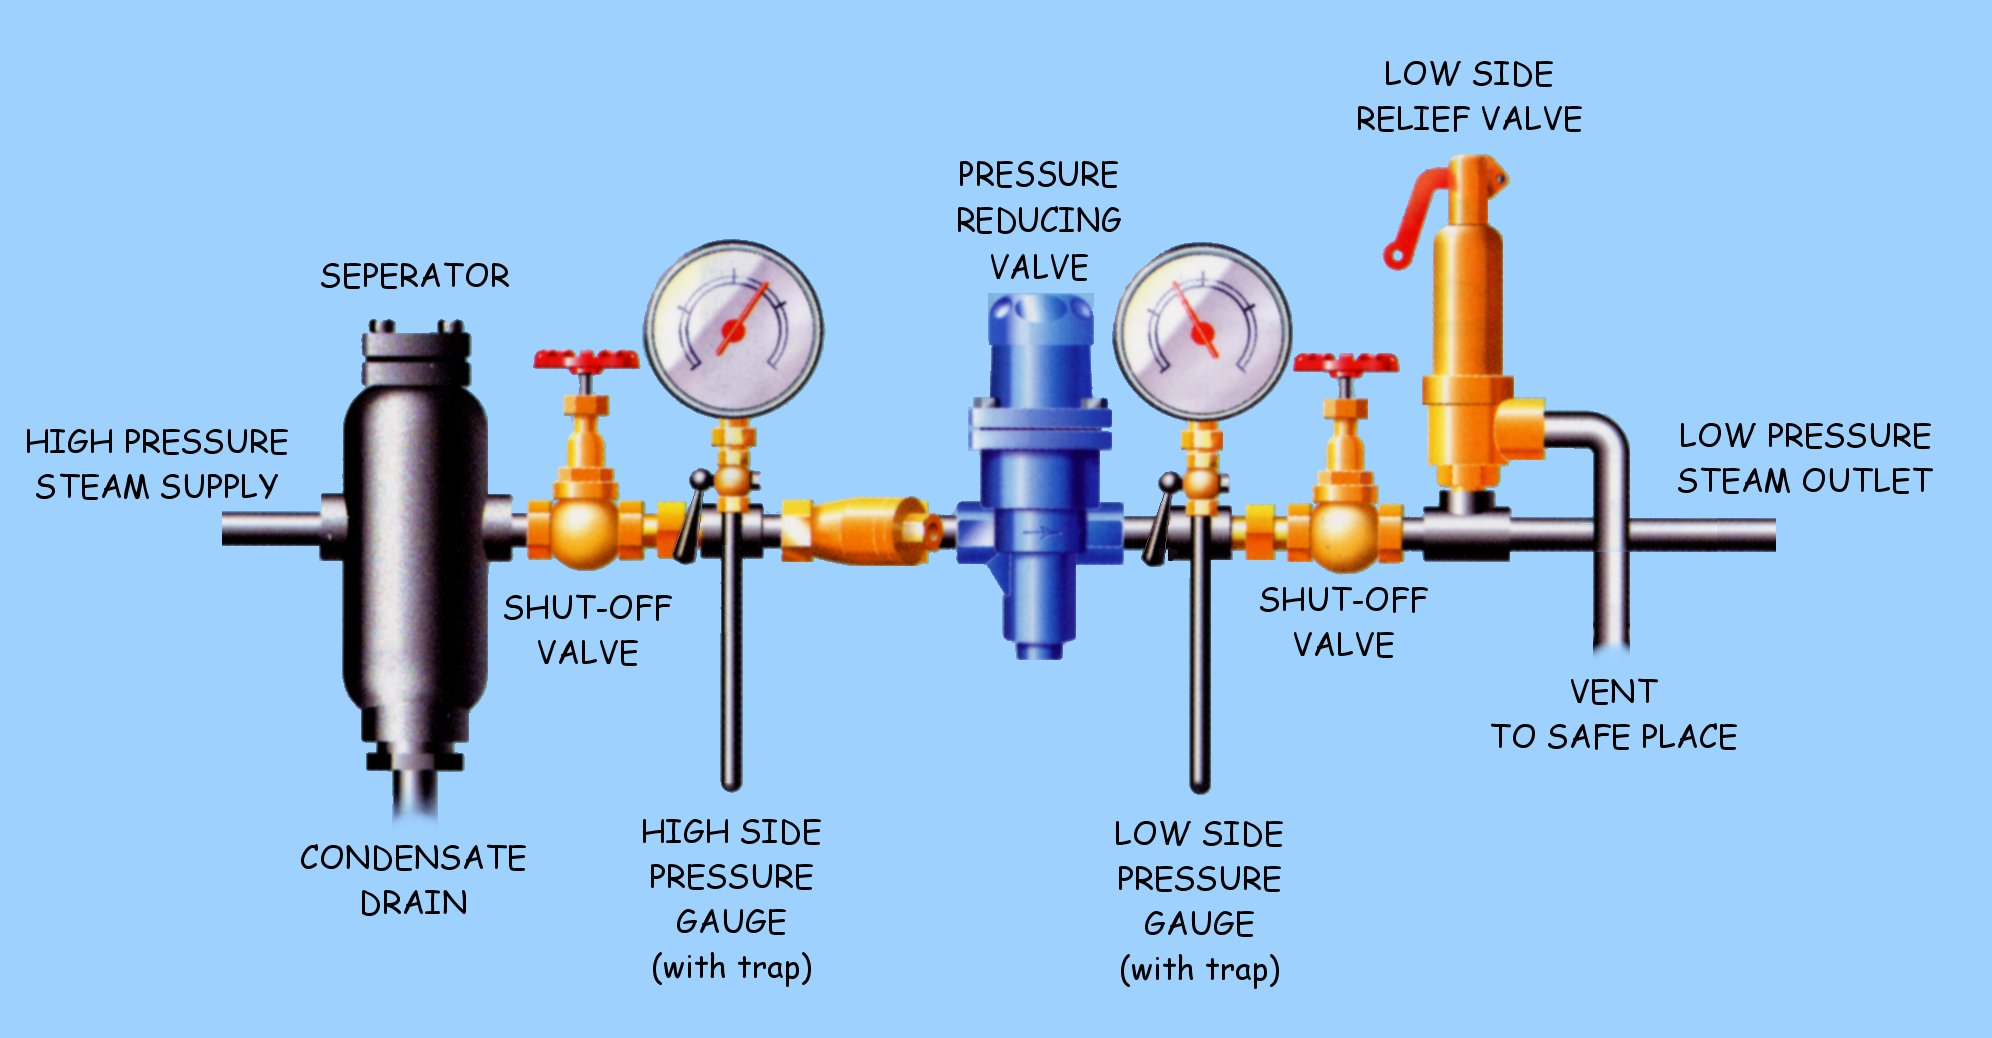 hight resolution of pressure reducing sets